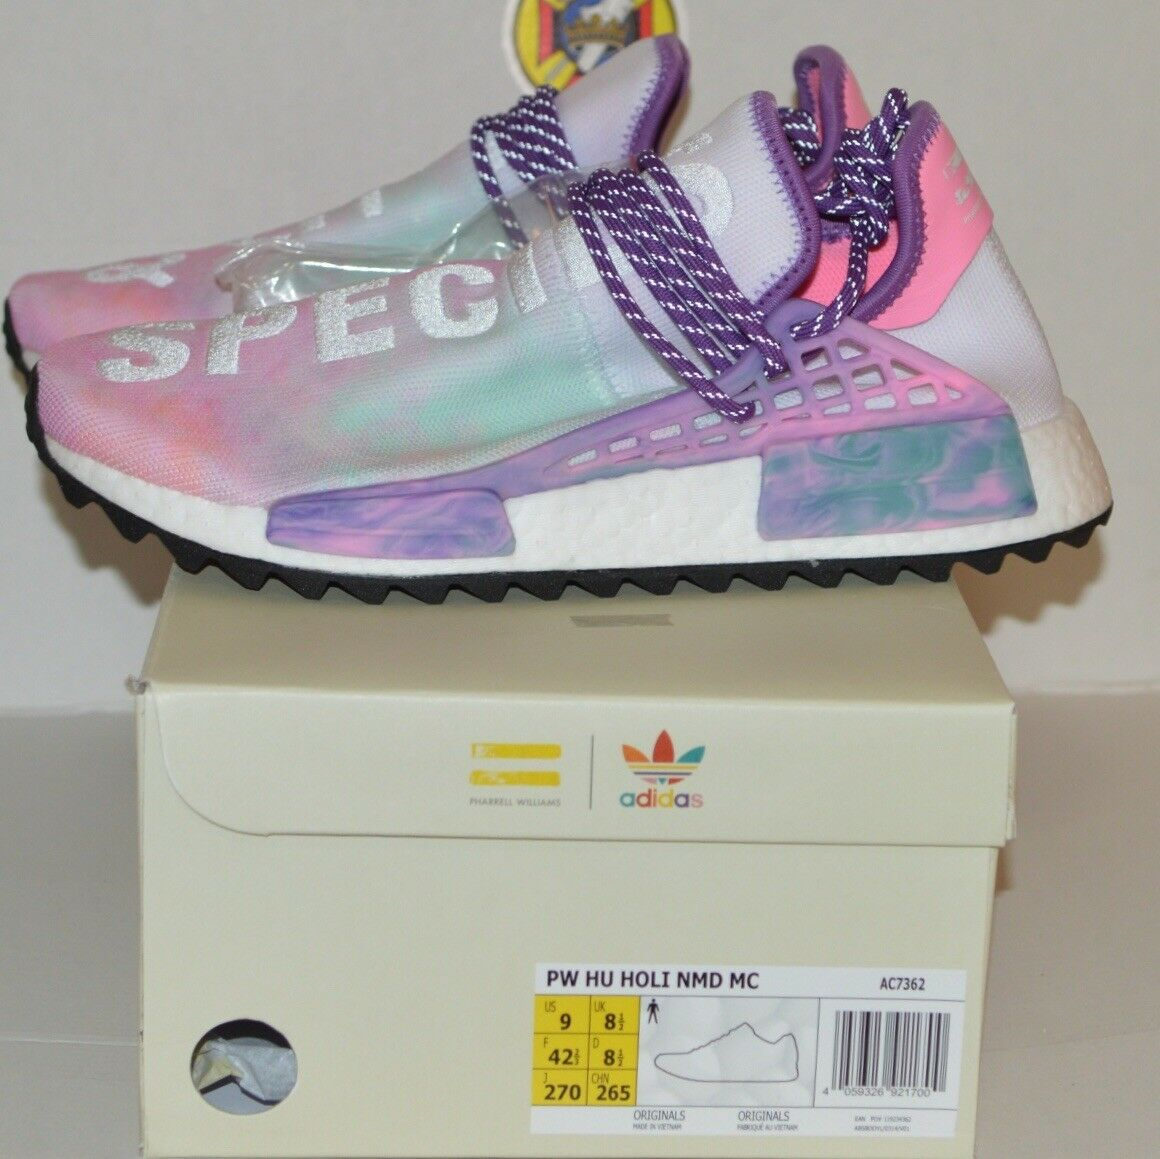 NEW adidas pw hu holi nmd mc pink size 9 100%authentic boost pk pharrell coral